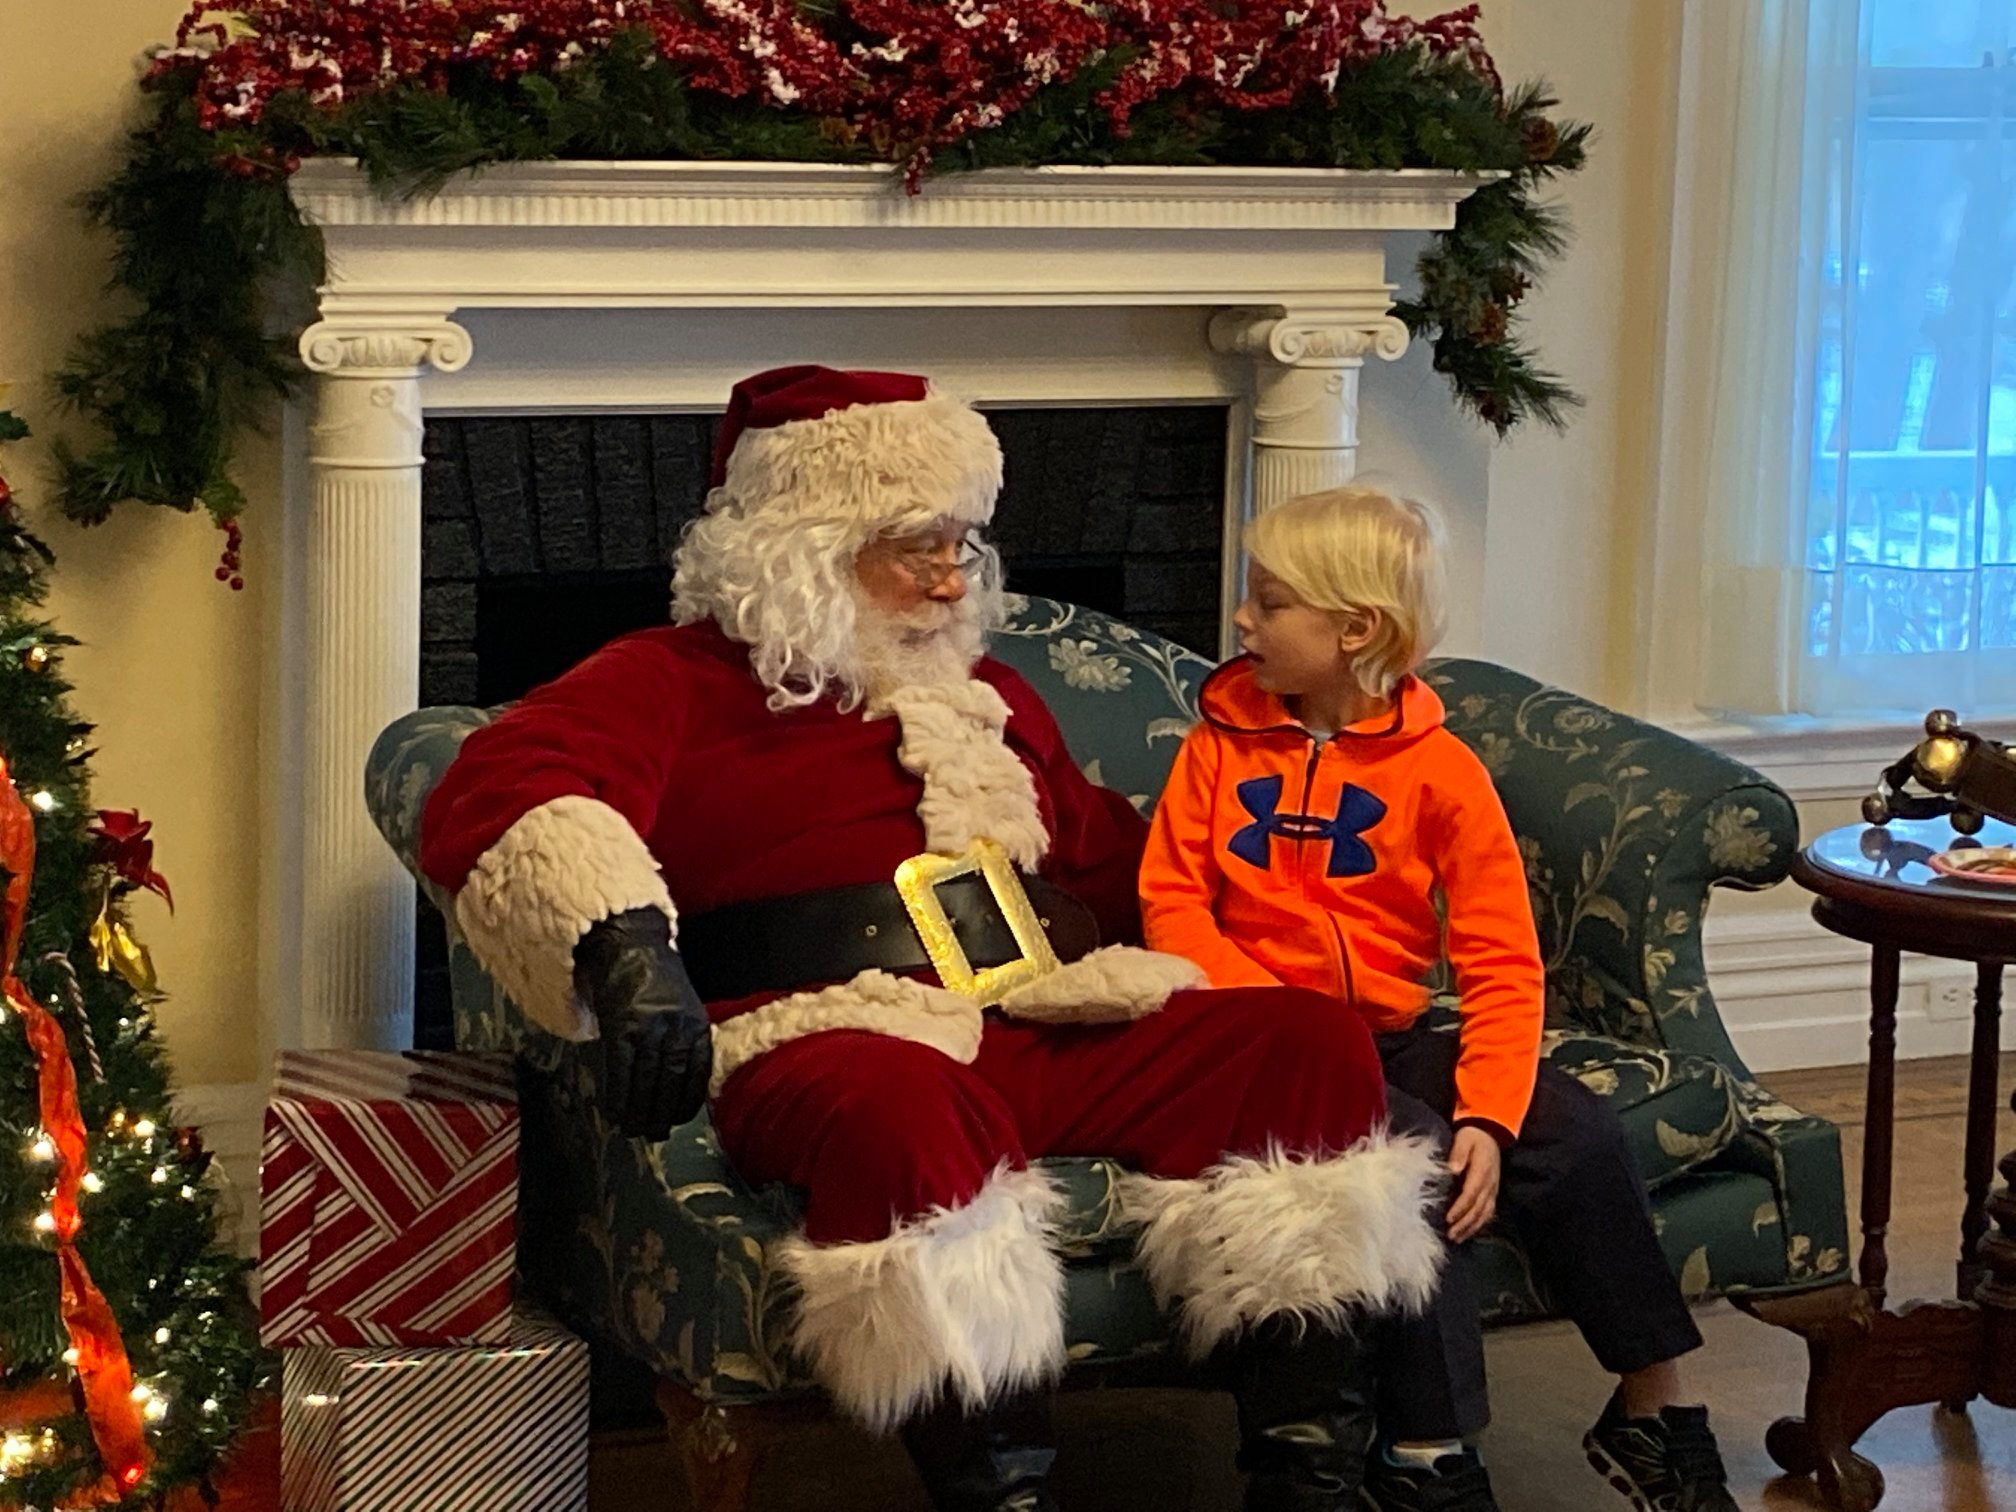 candy-cane-santa-listening-to-boys-wish-list